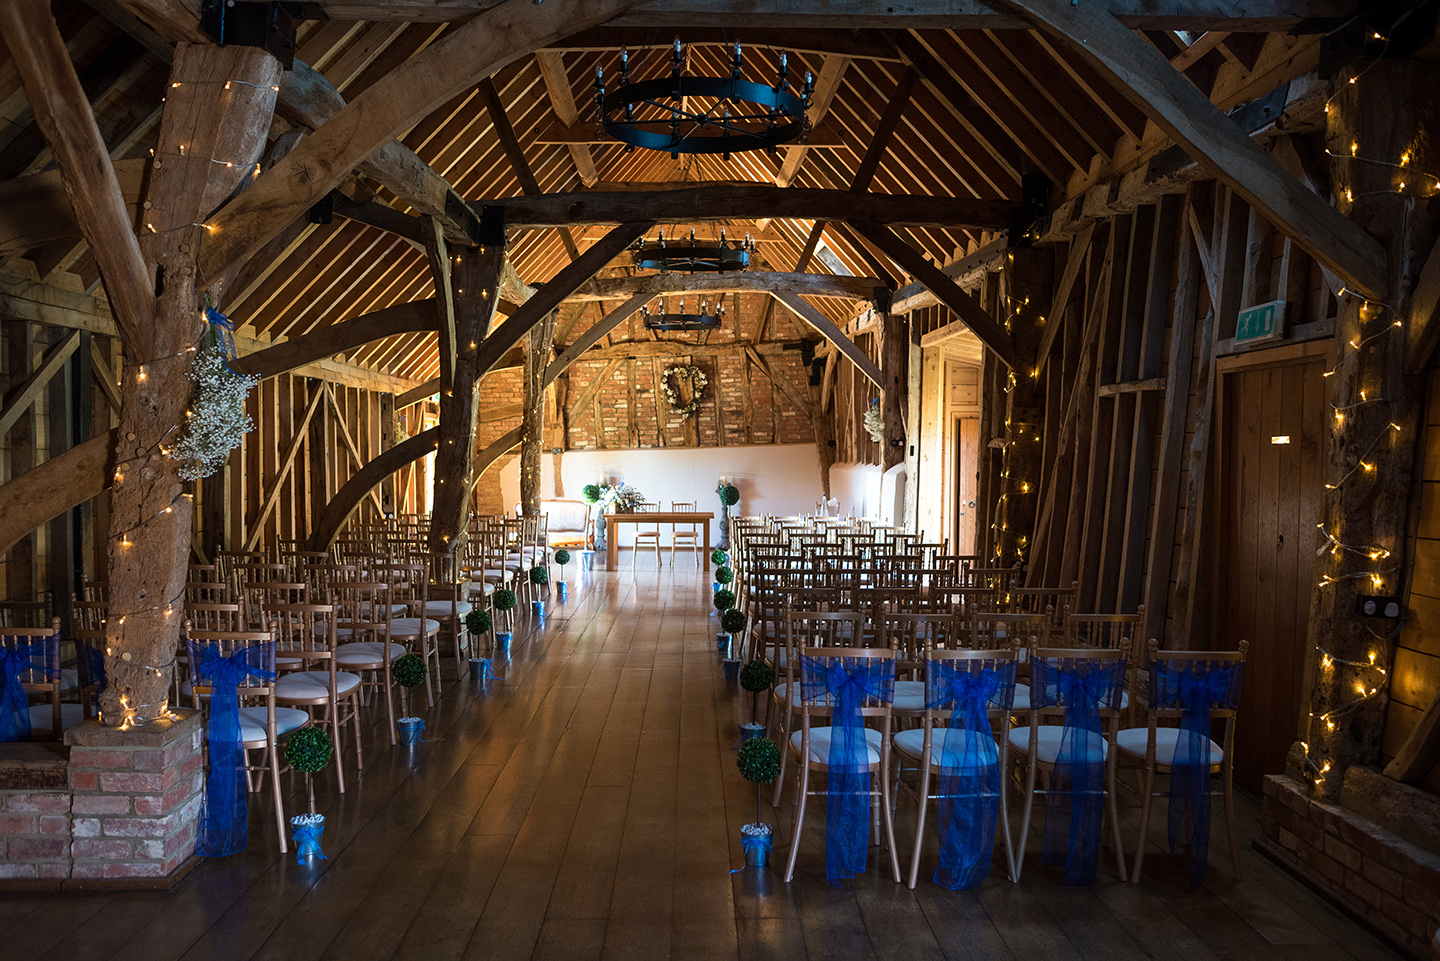 The Rickety Barn looked beautiful set up for the wedding ceremony with the chairs decorated with blue sashes